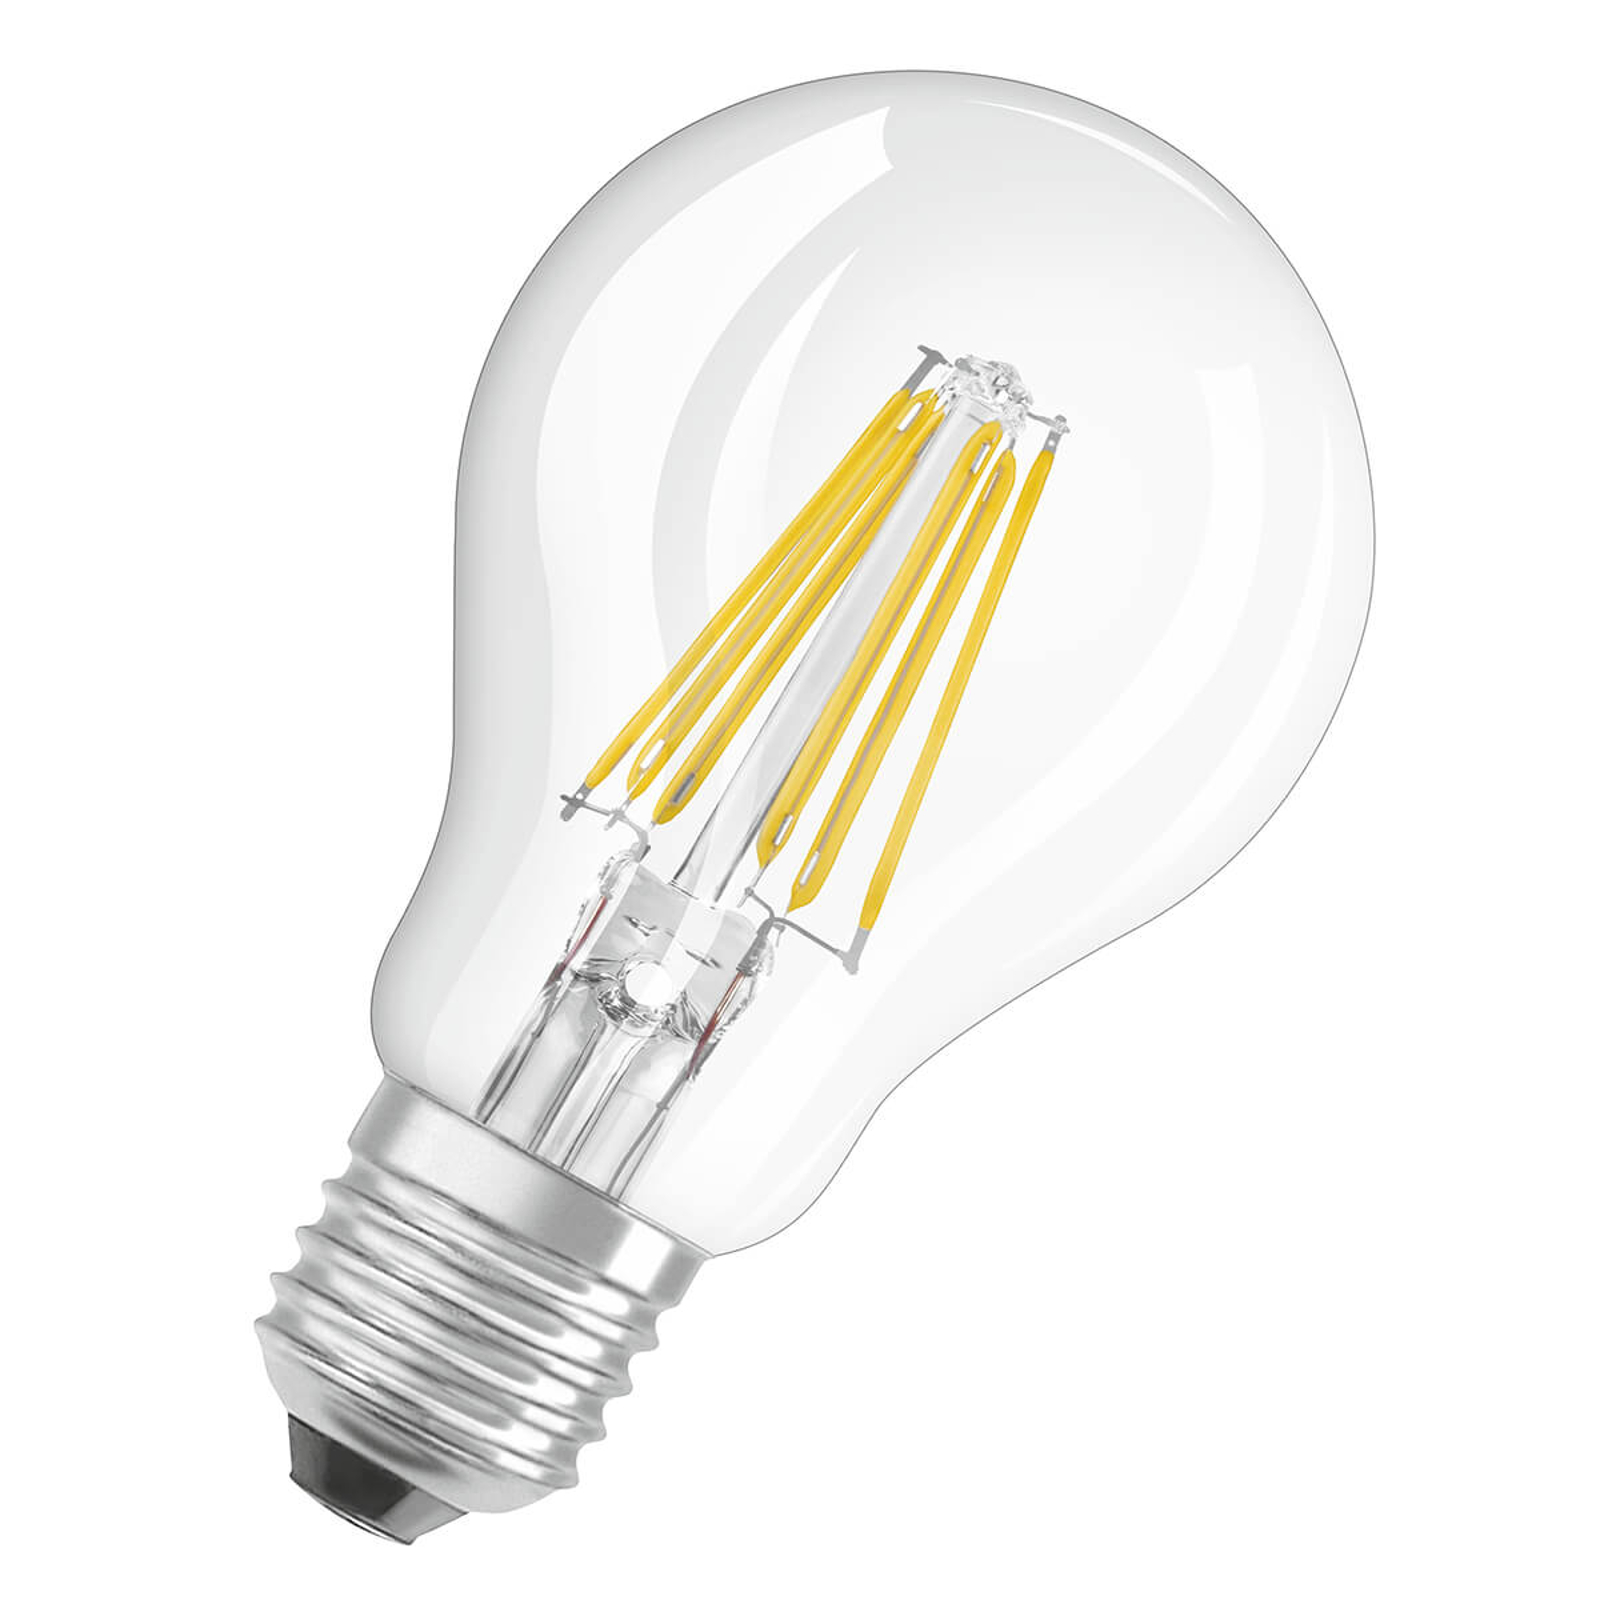 Ampoule LED filament E27 8W, blanc chaud, 1 055 lm